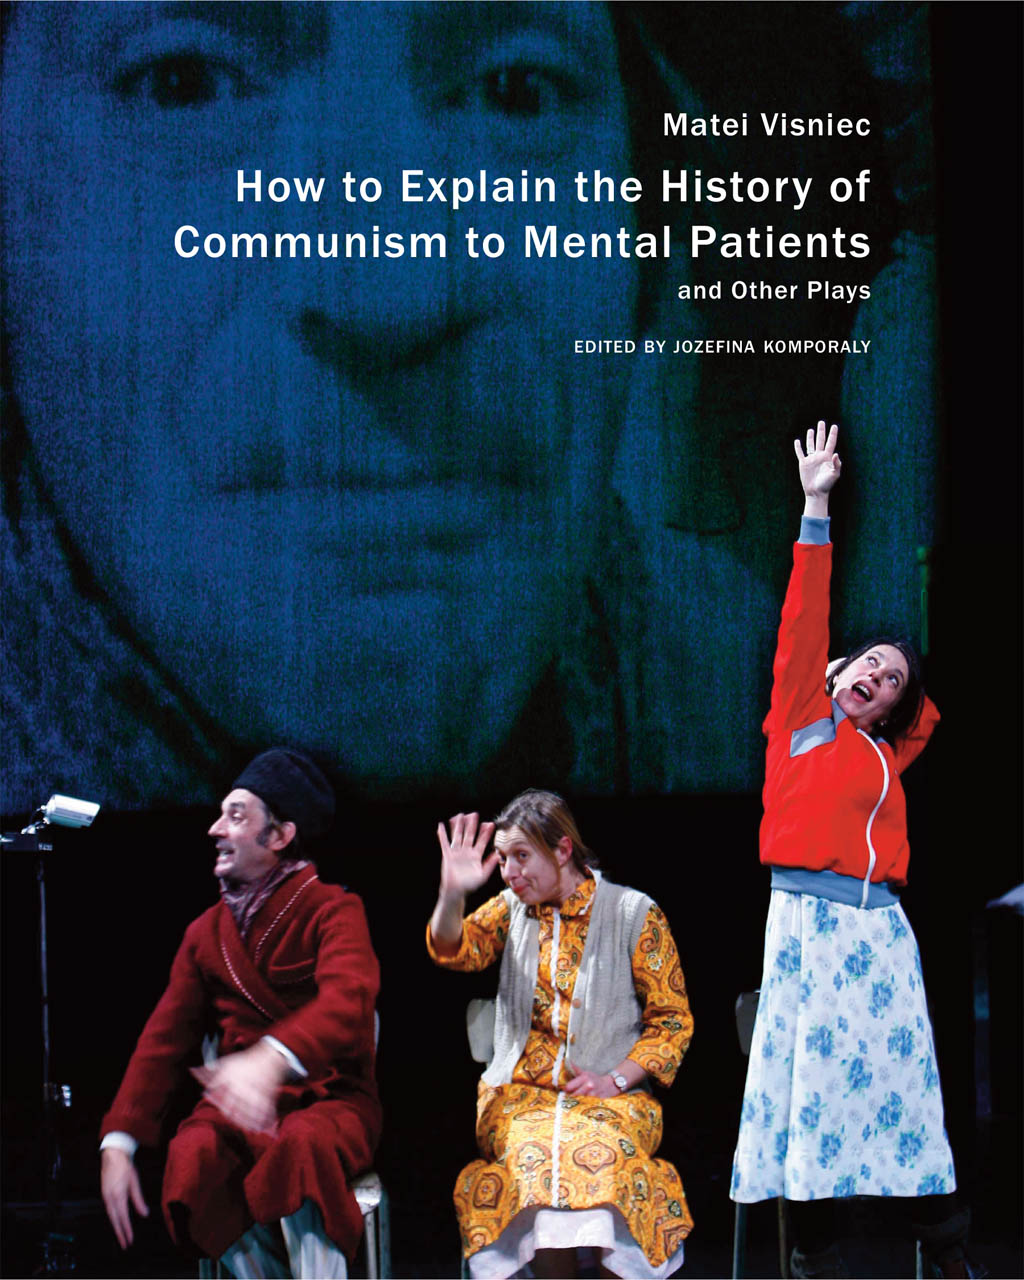 How to Explain the History of Communism to Mental Patients and Other Plays by Matéi Visniec | Seagull Books